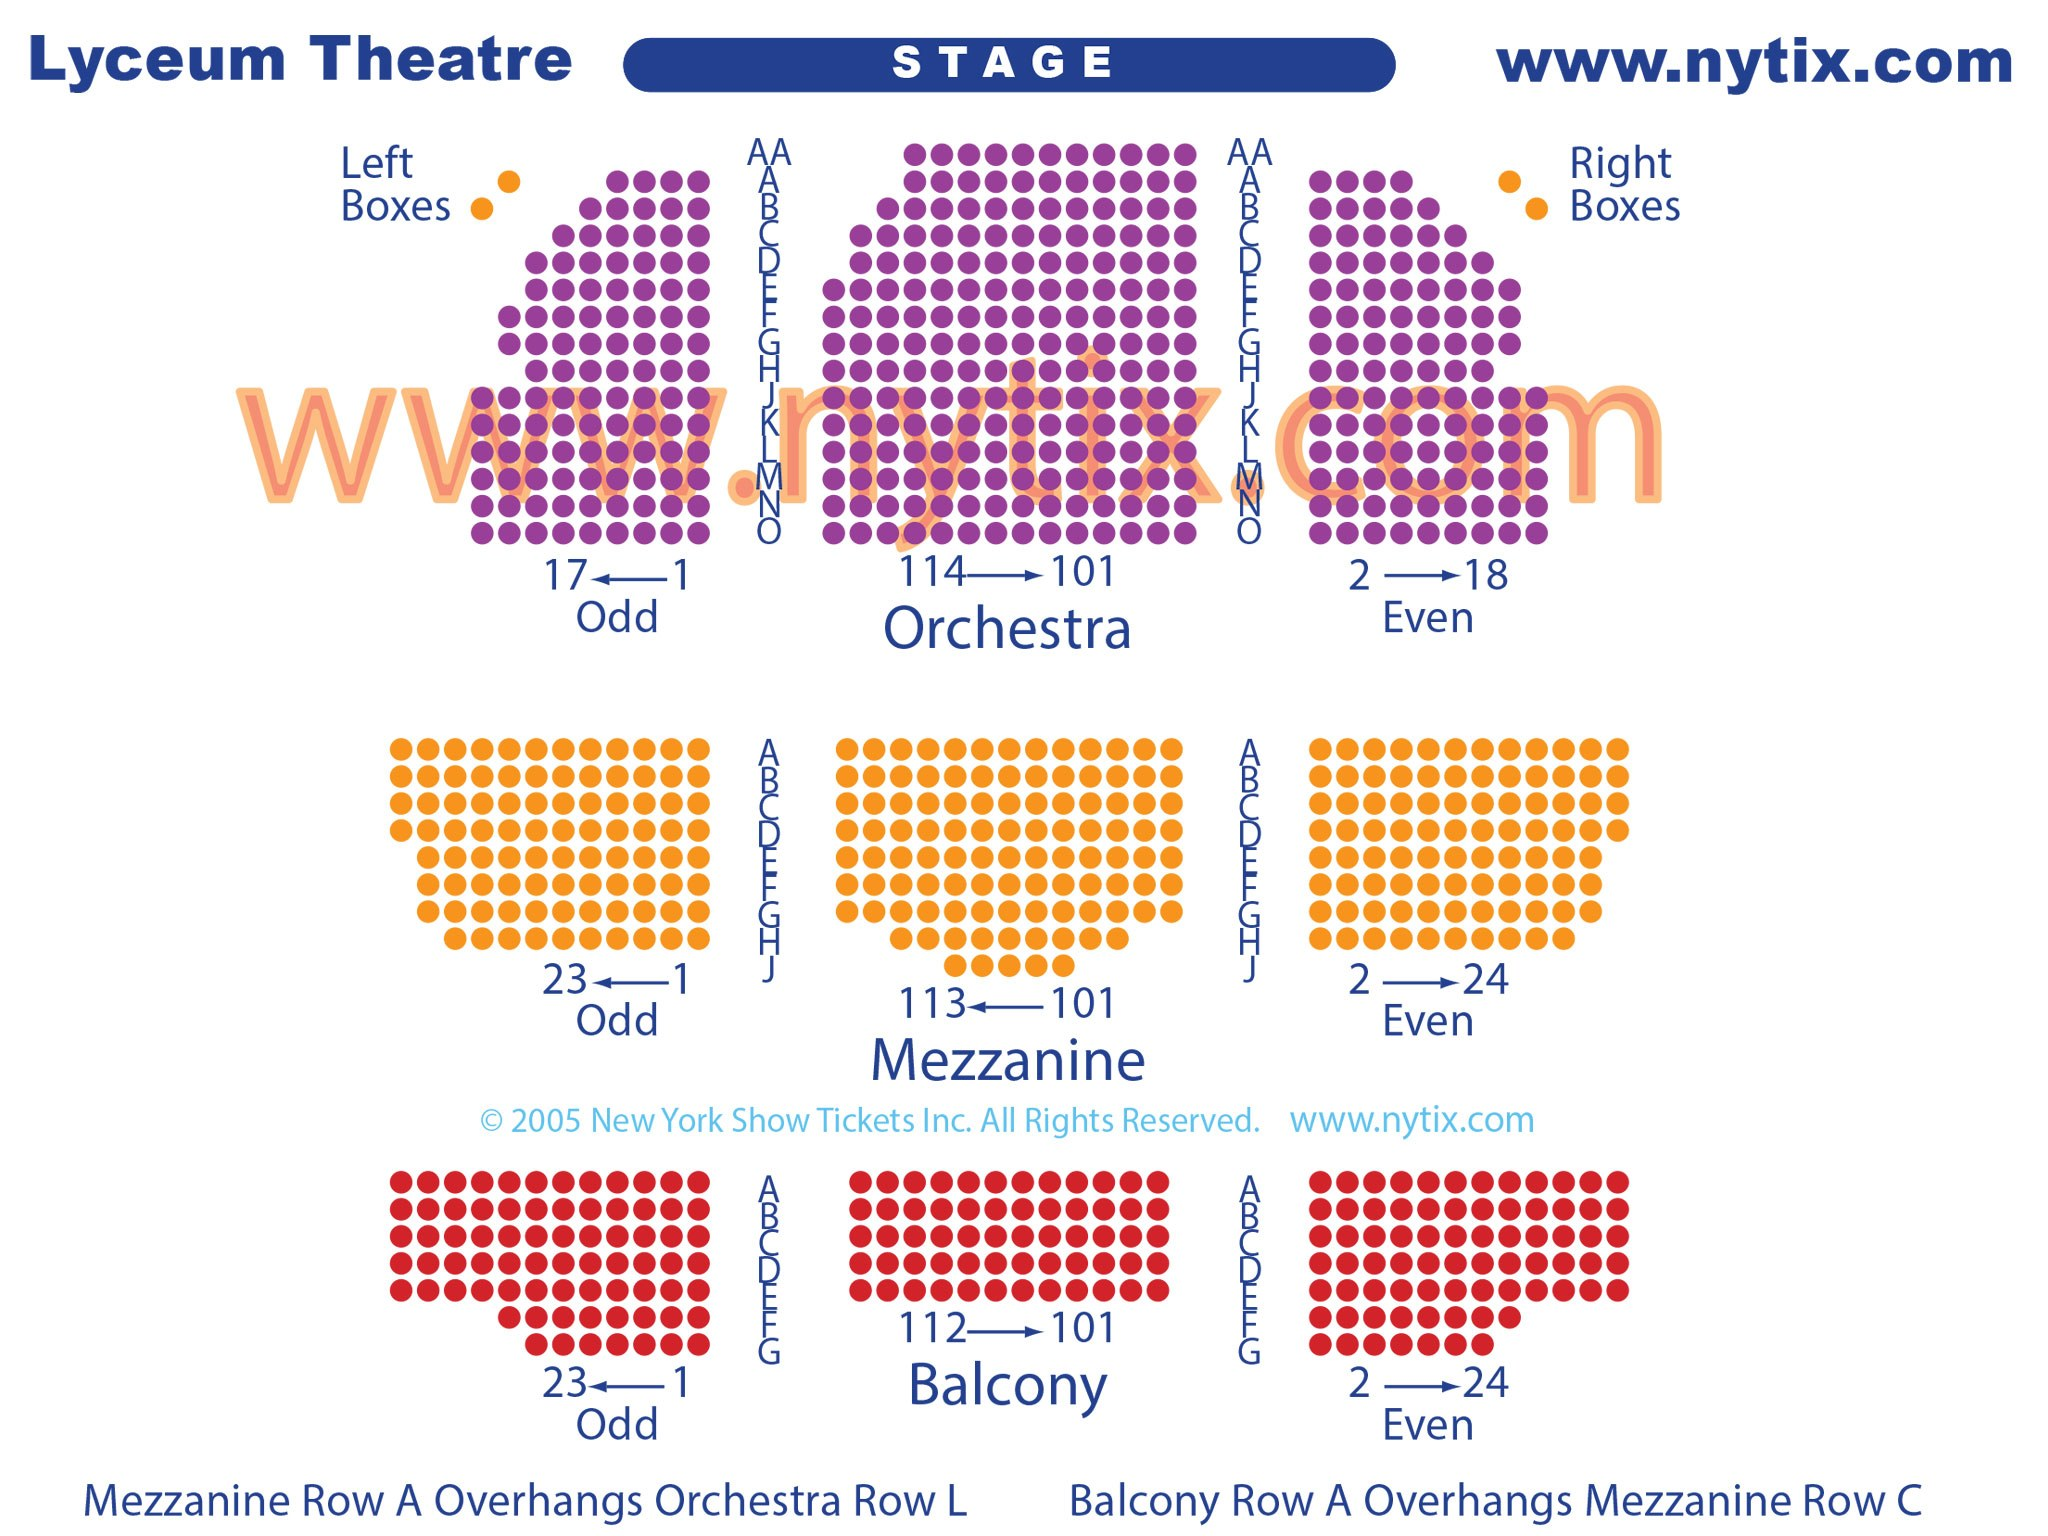 Lyceum Theatre Seating Chart